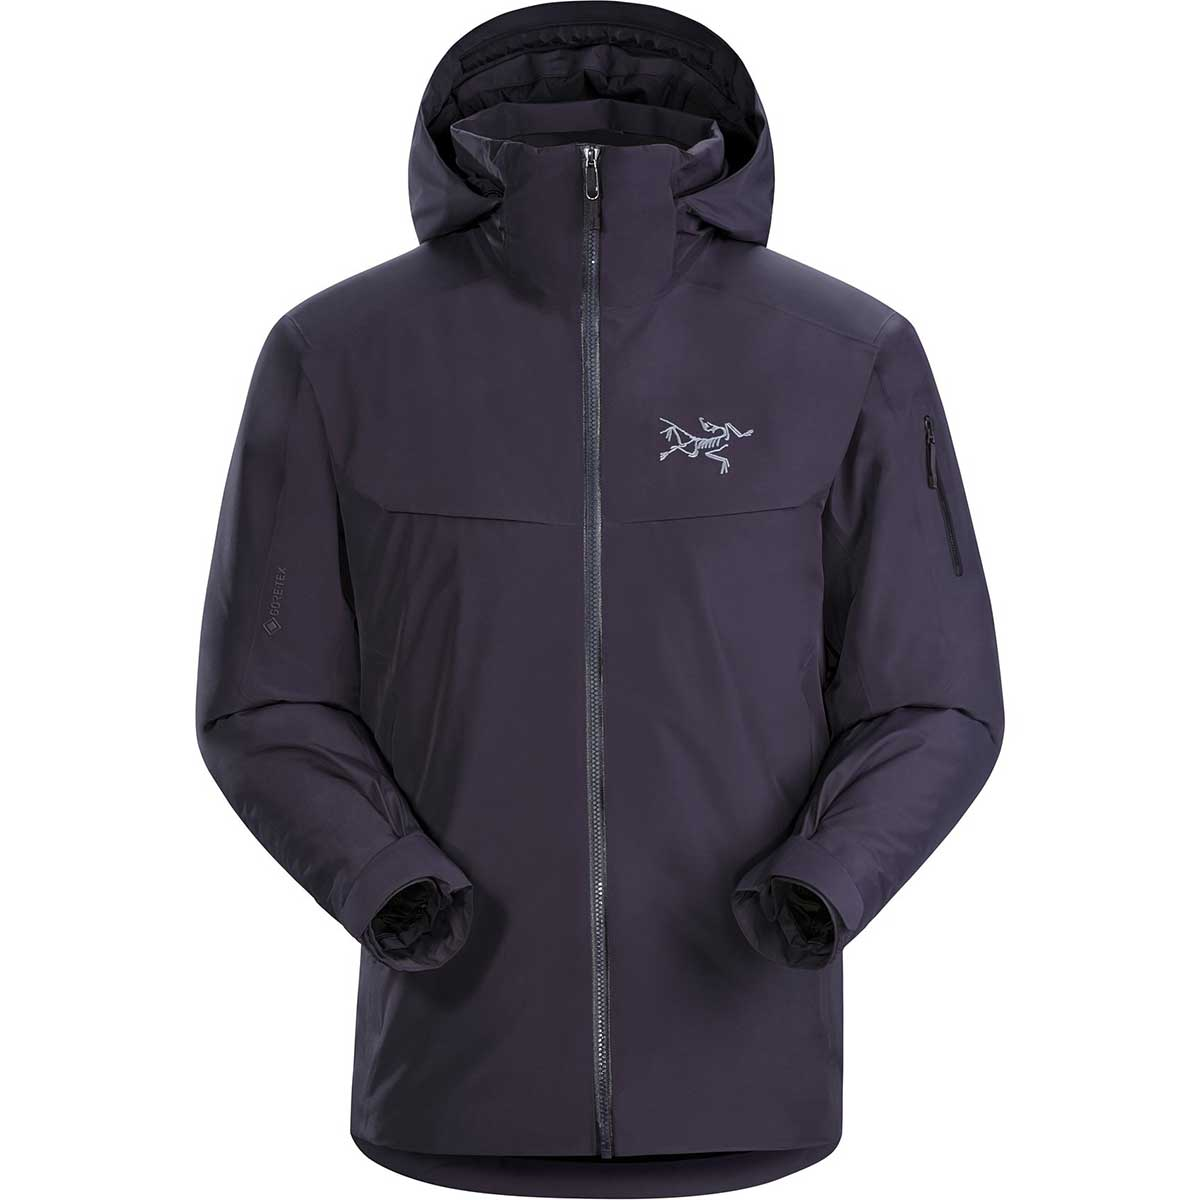 Arcteryx men's Macai Jacket in Dimma front view